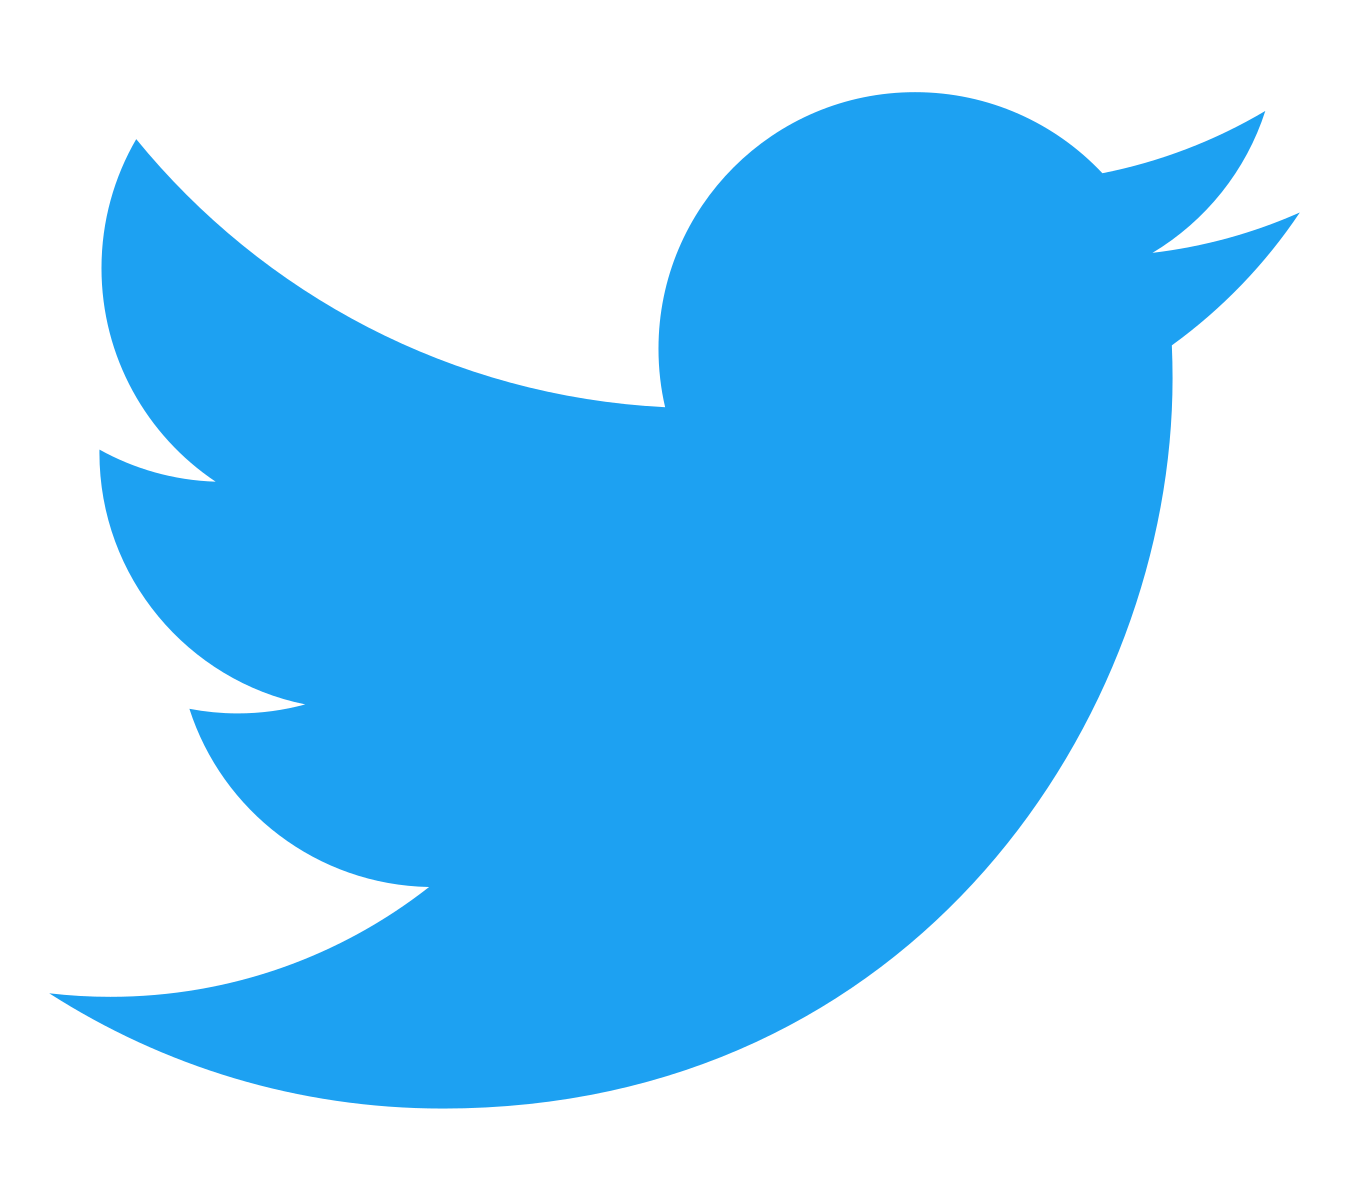 Twitter logo and symbol, meaning, history, PNG